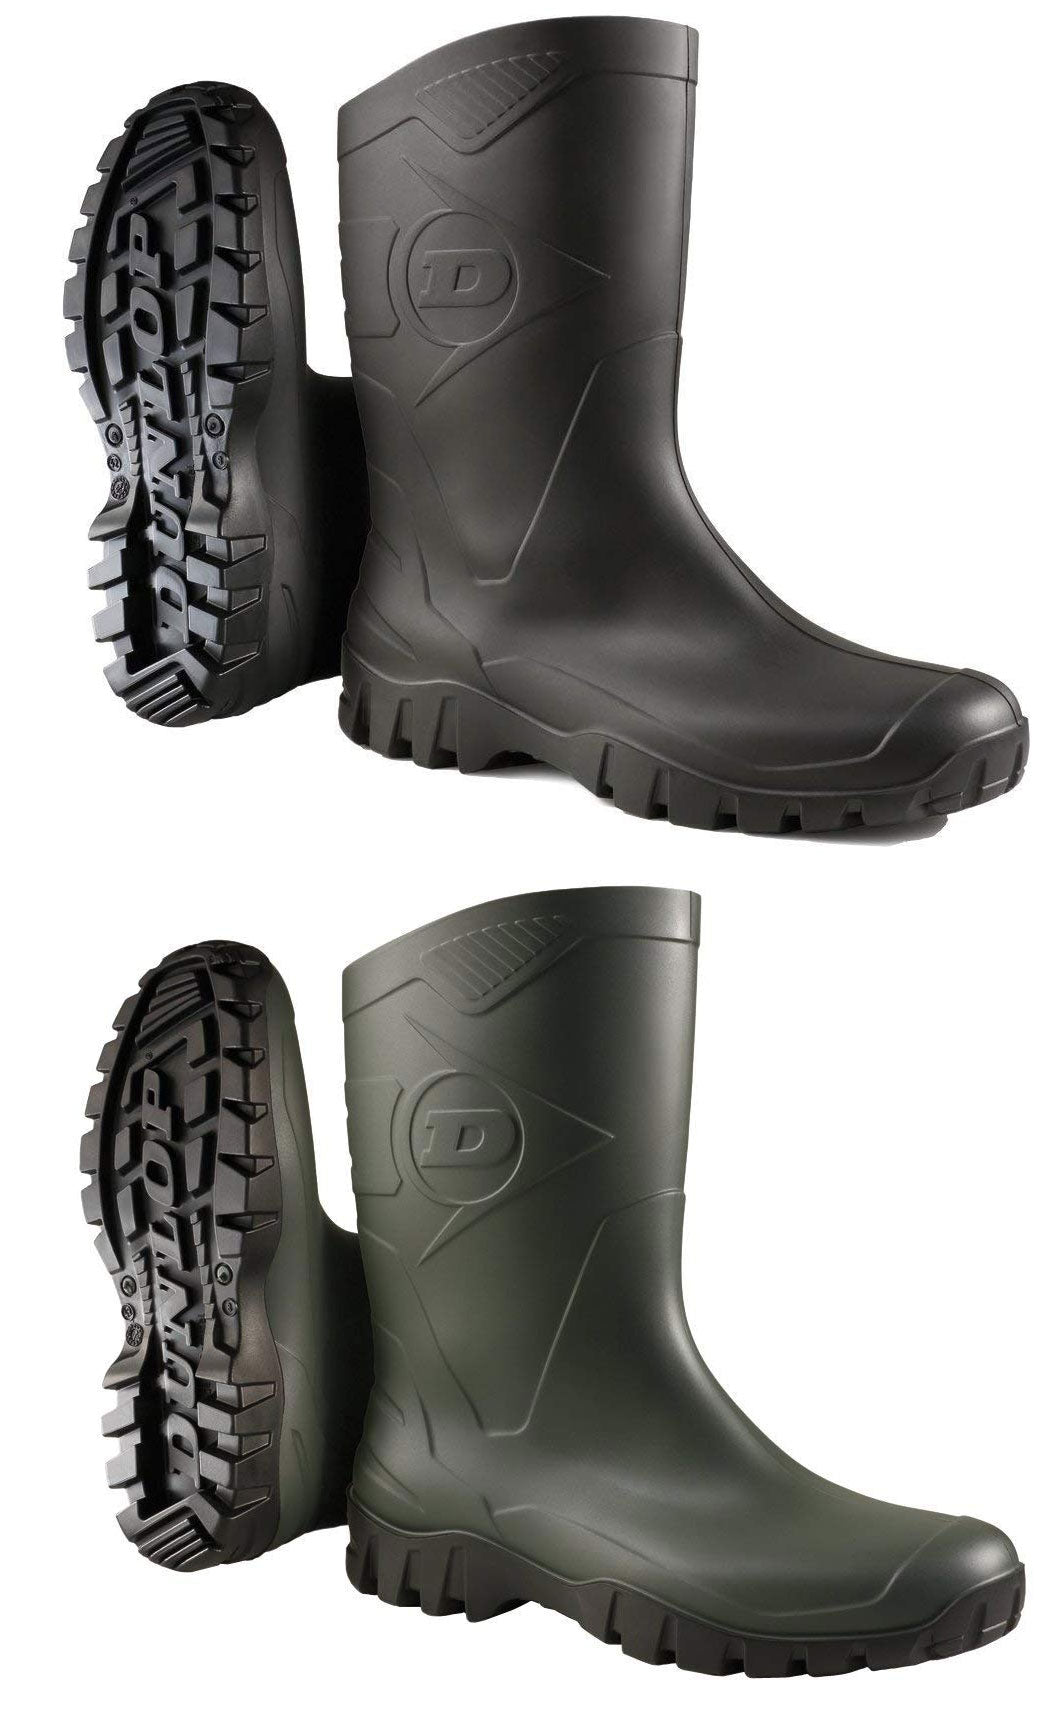 Dunlop Dee Low Leg Wellington Boots W116EX Green & Black